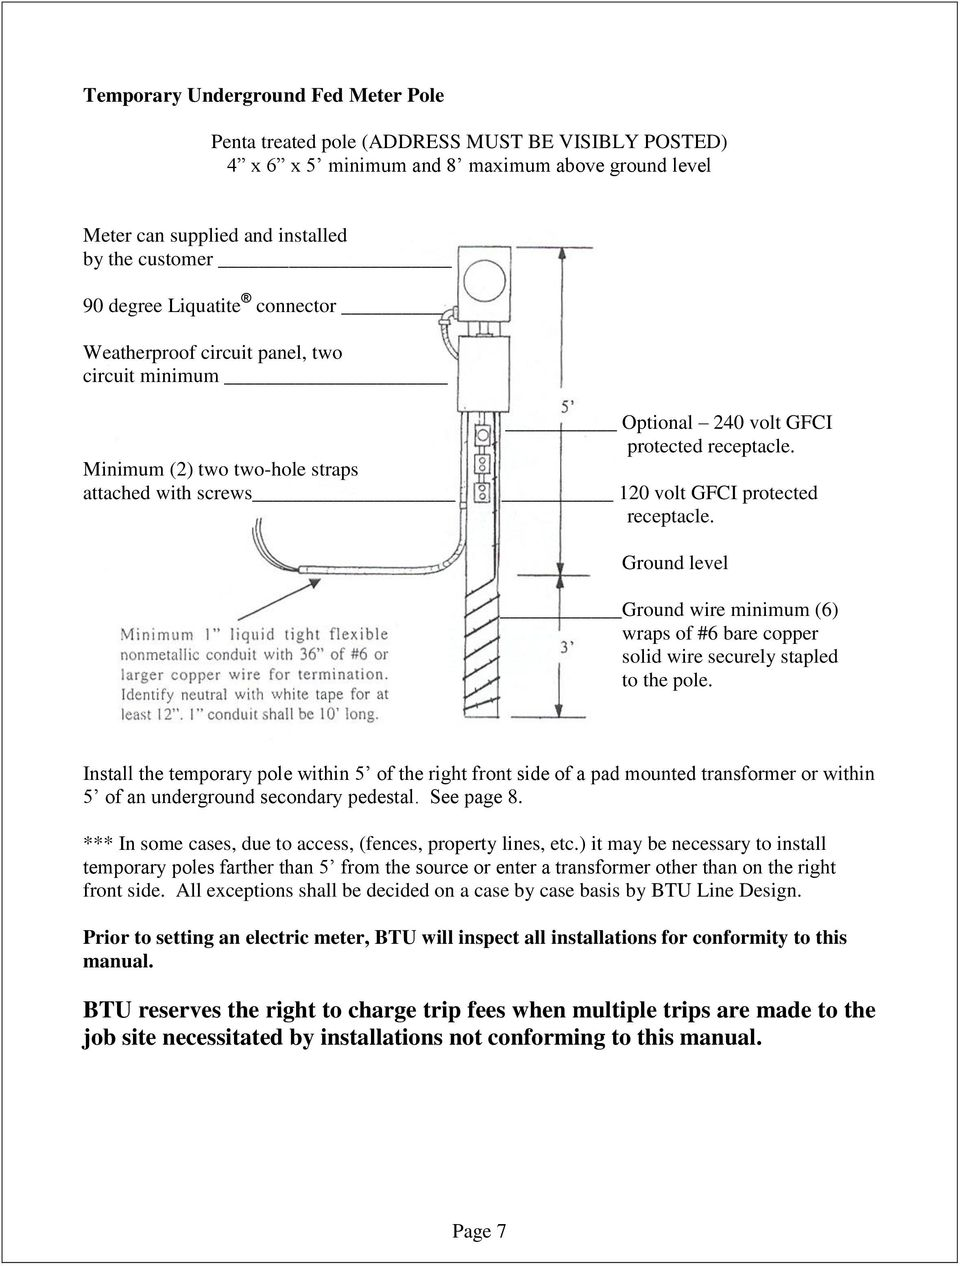 hight resolution of 120 volt gfci protected receptacle ground level ground wire minimum 6 wraps of